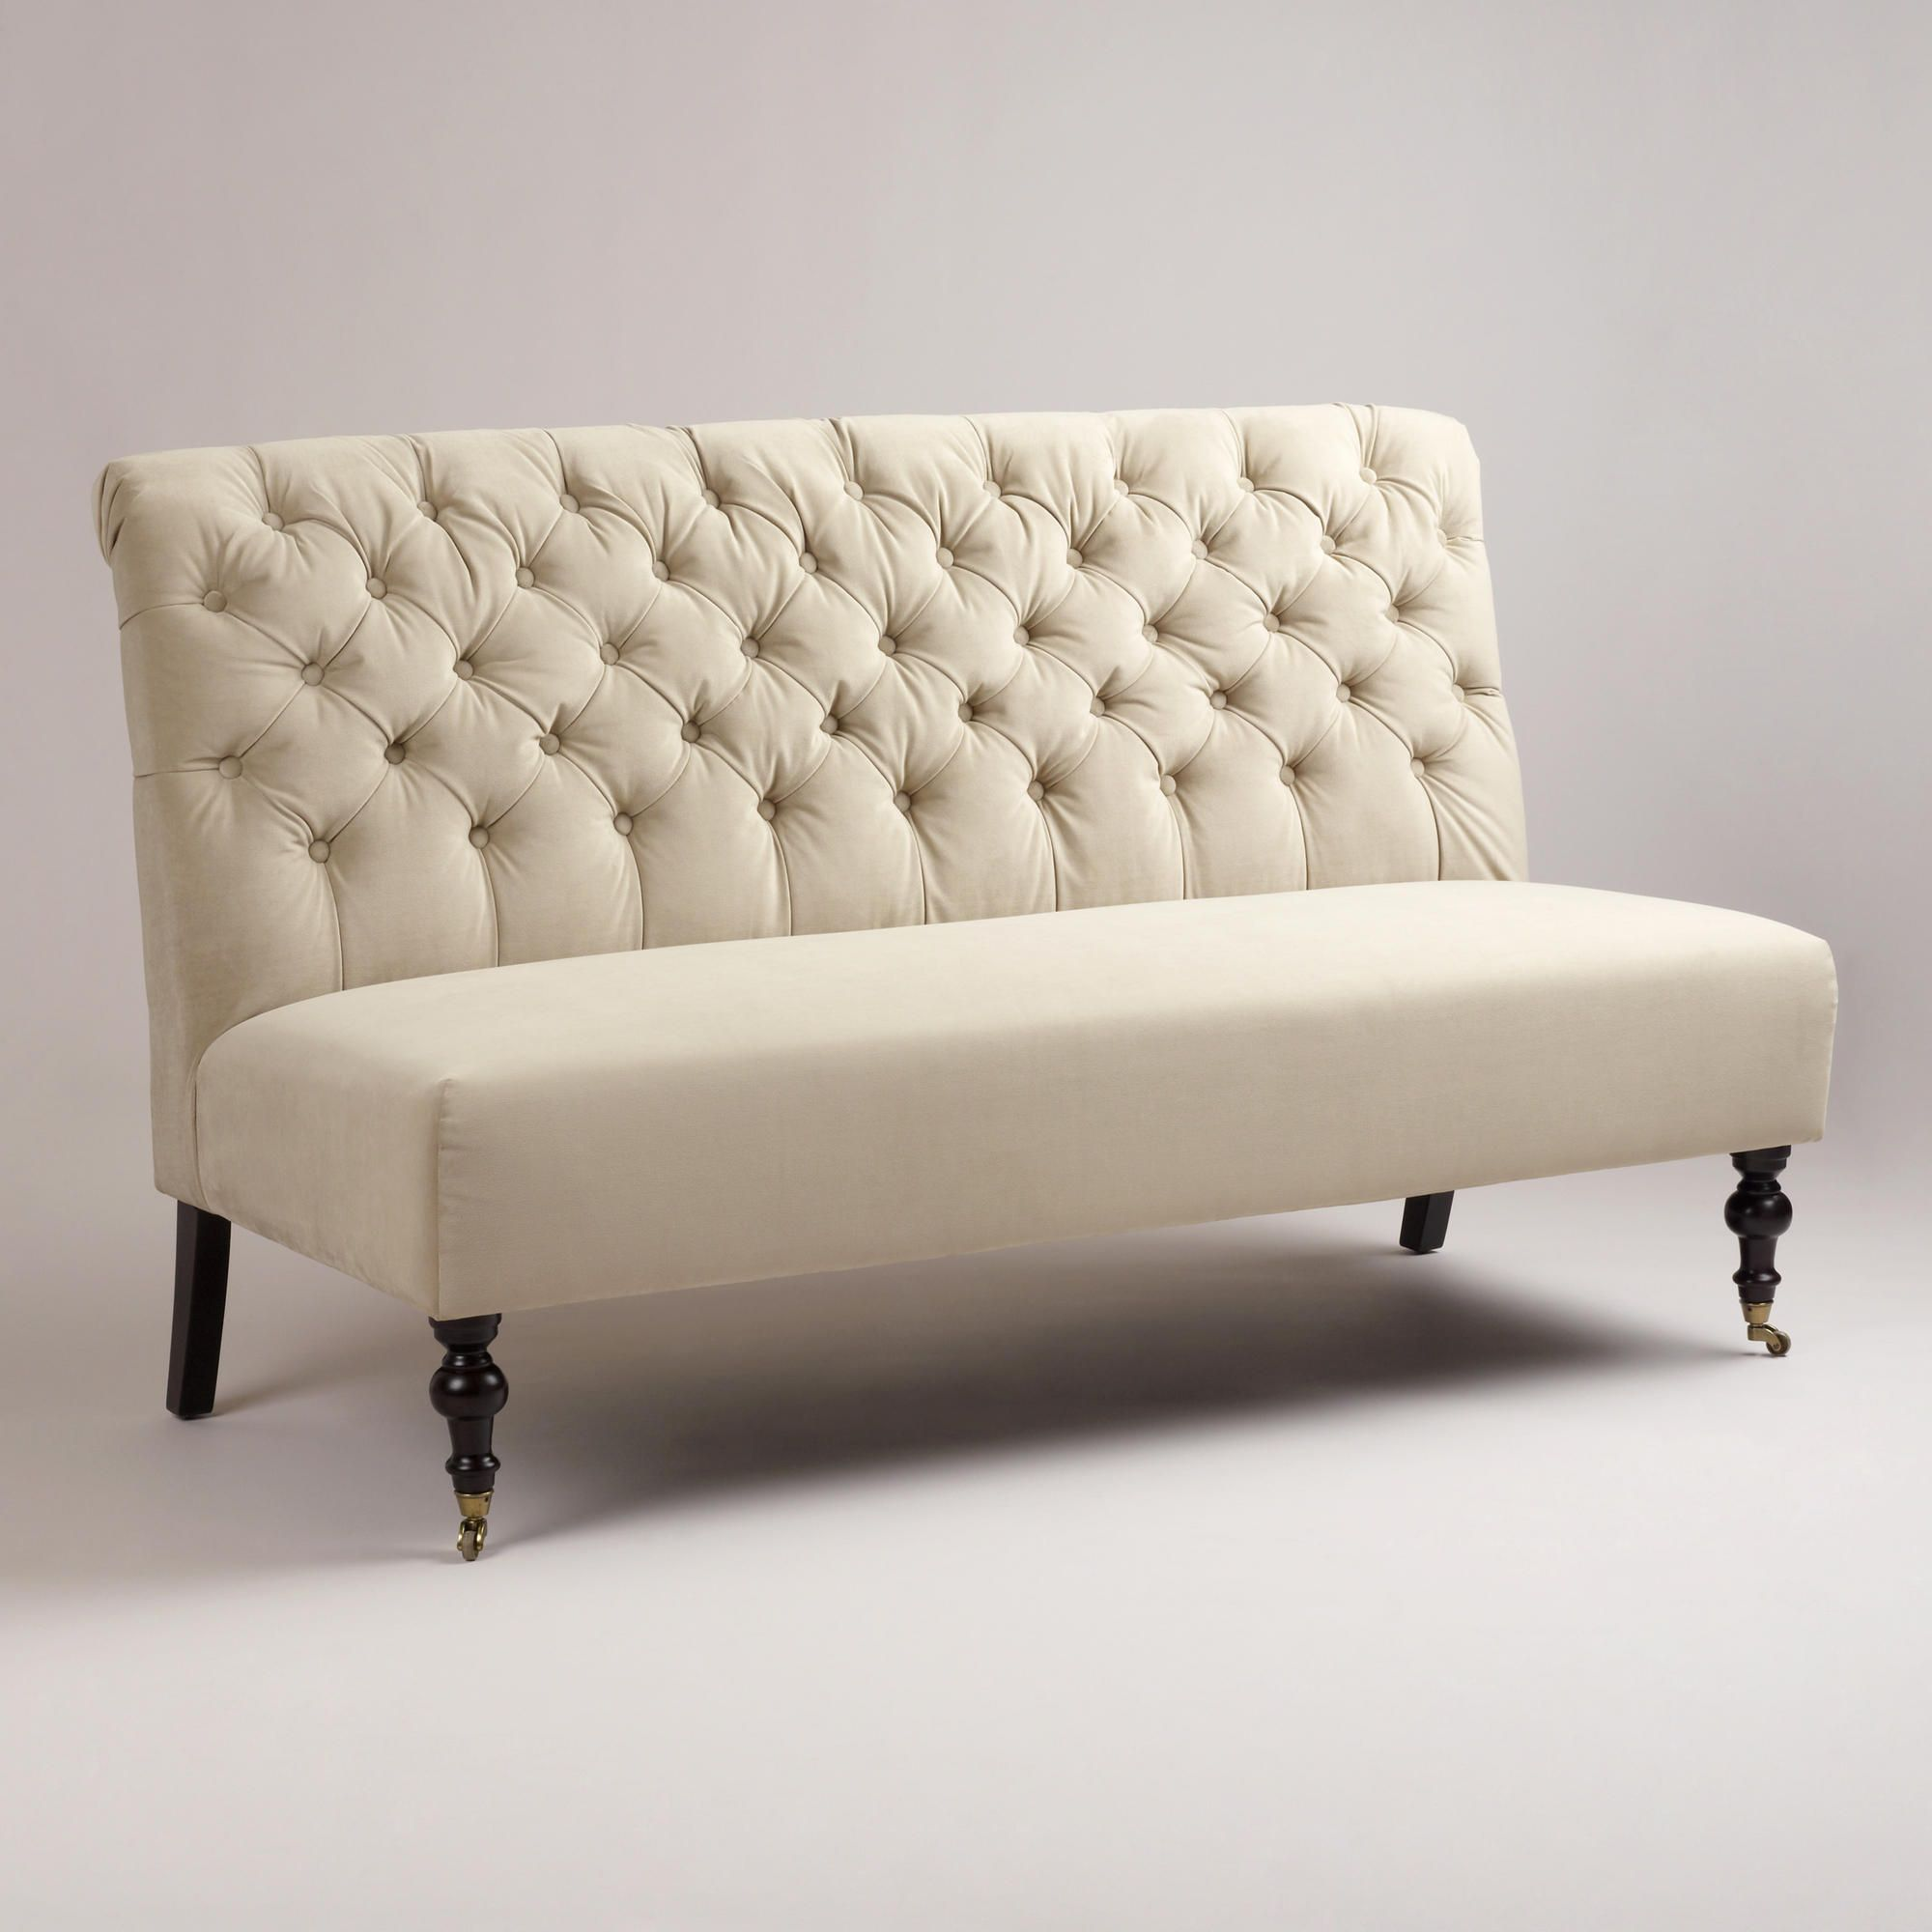 Tufted Back Banquette Google Search Tufted Back